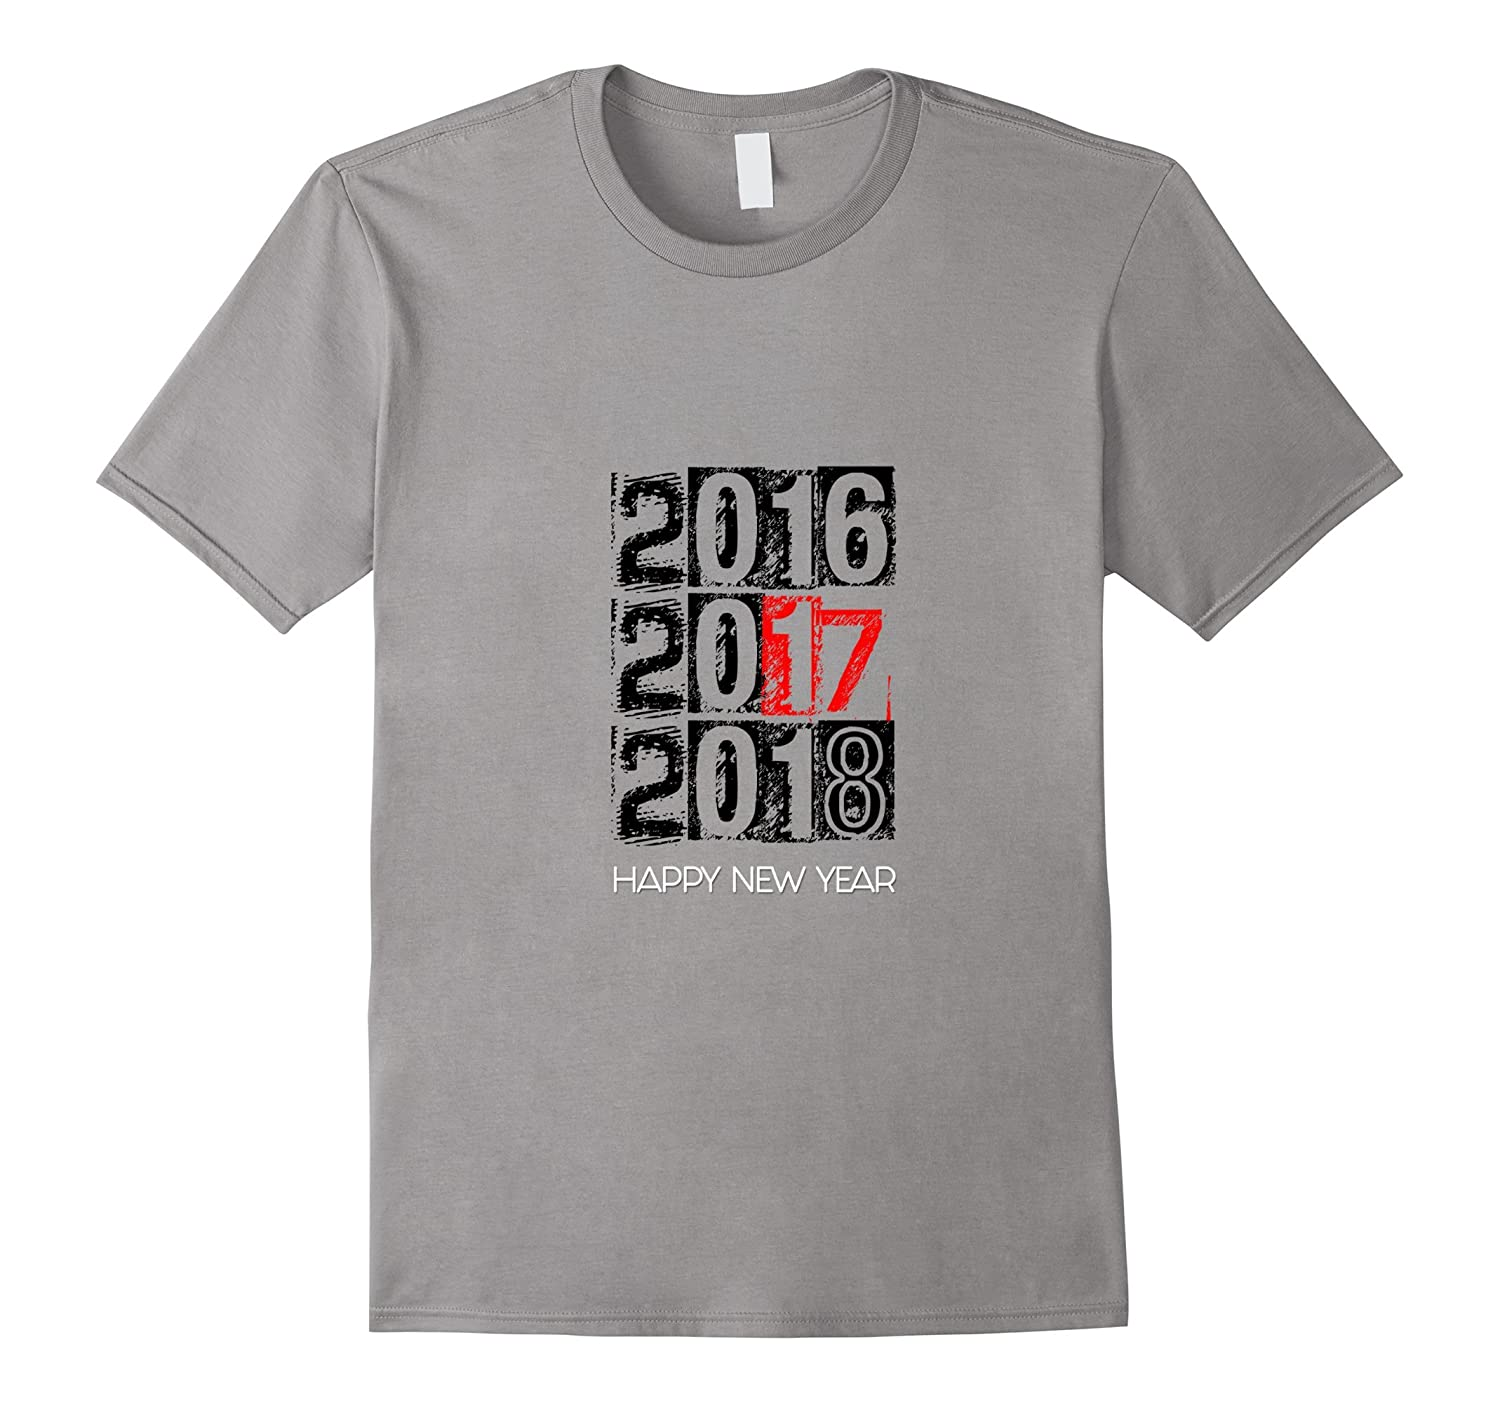 2017 HAPPY NEW YEAR T-SHIRT-CL